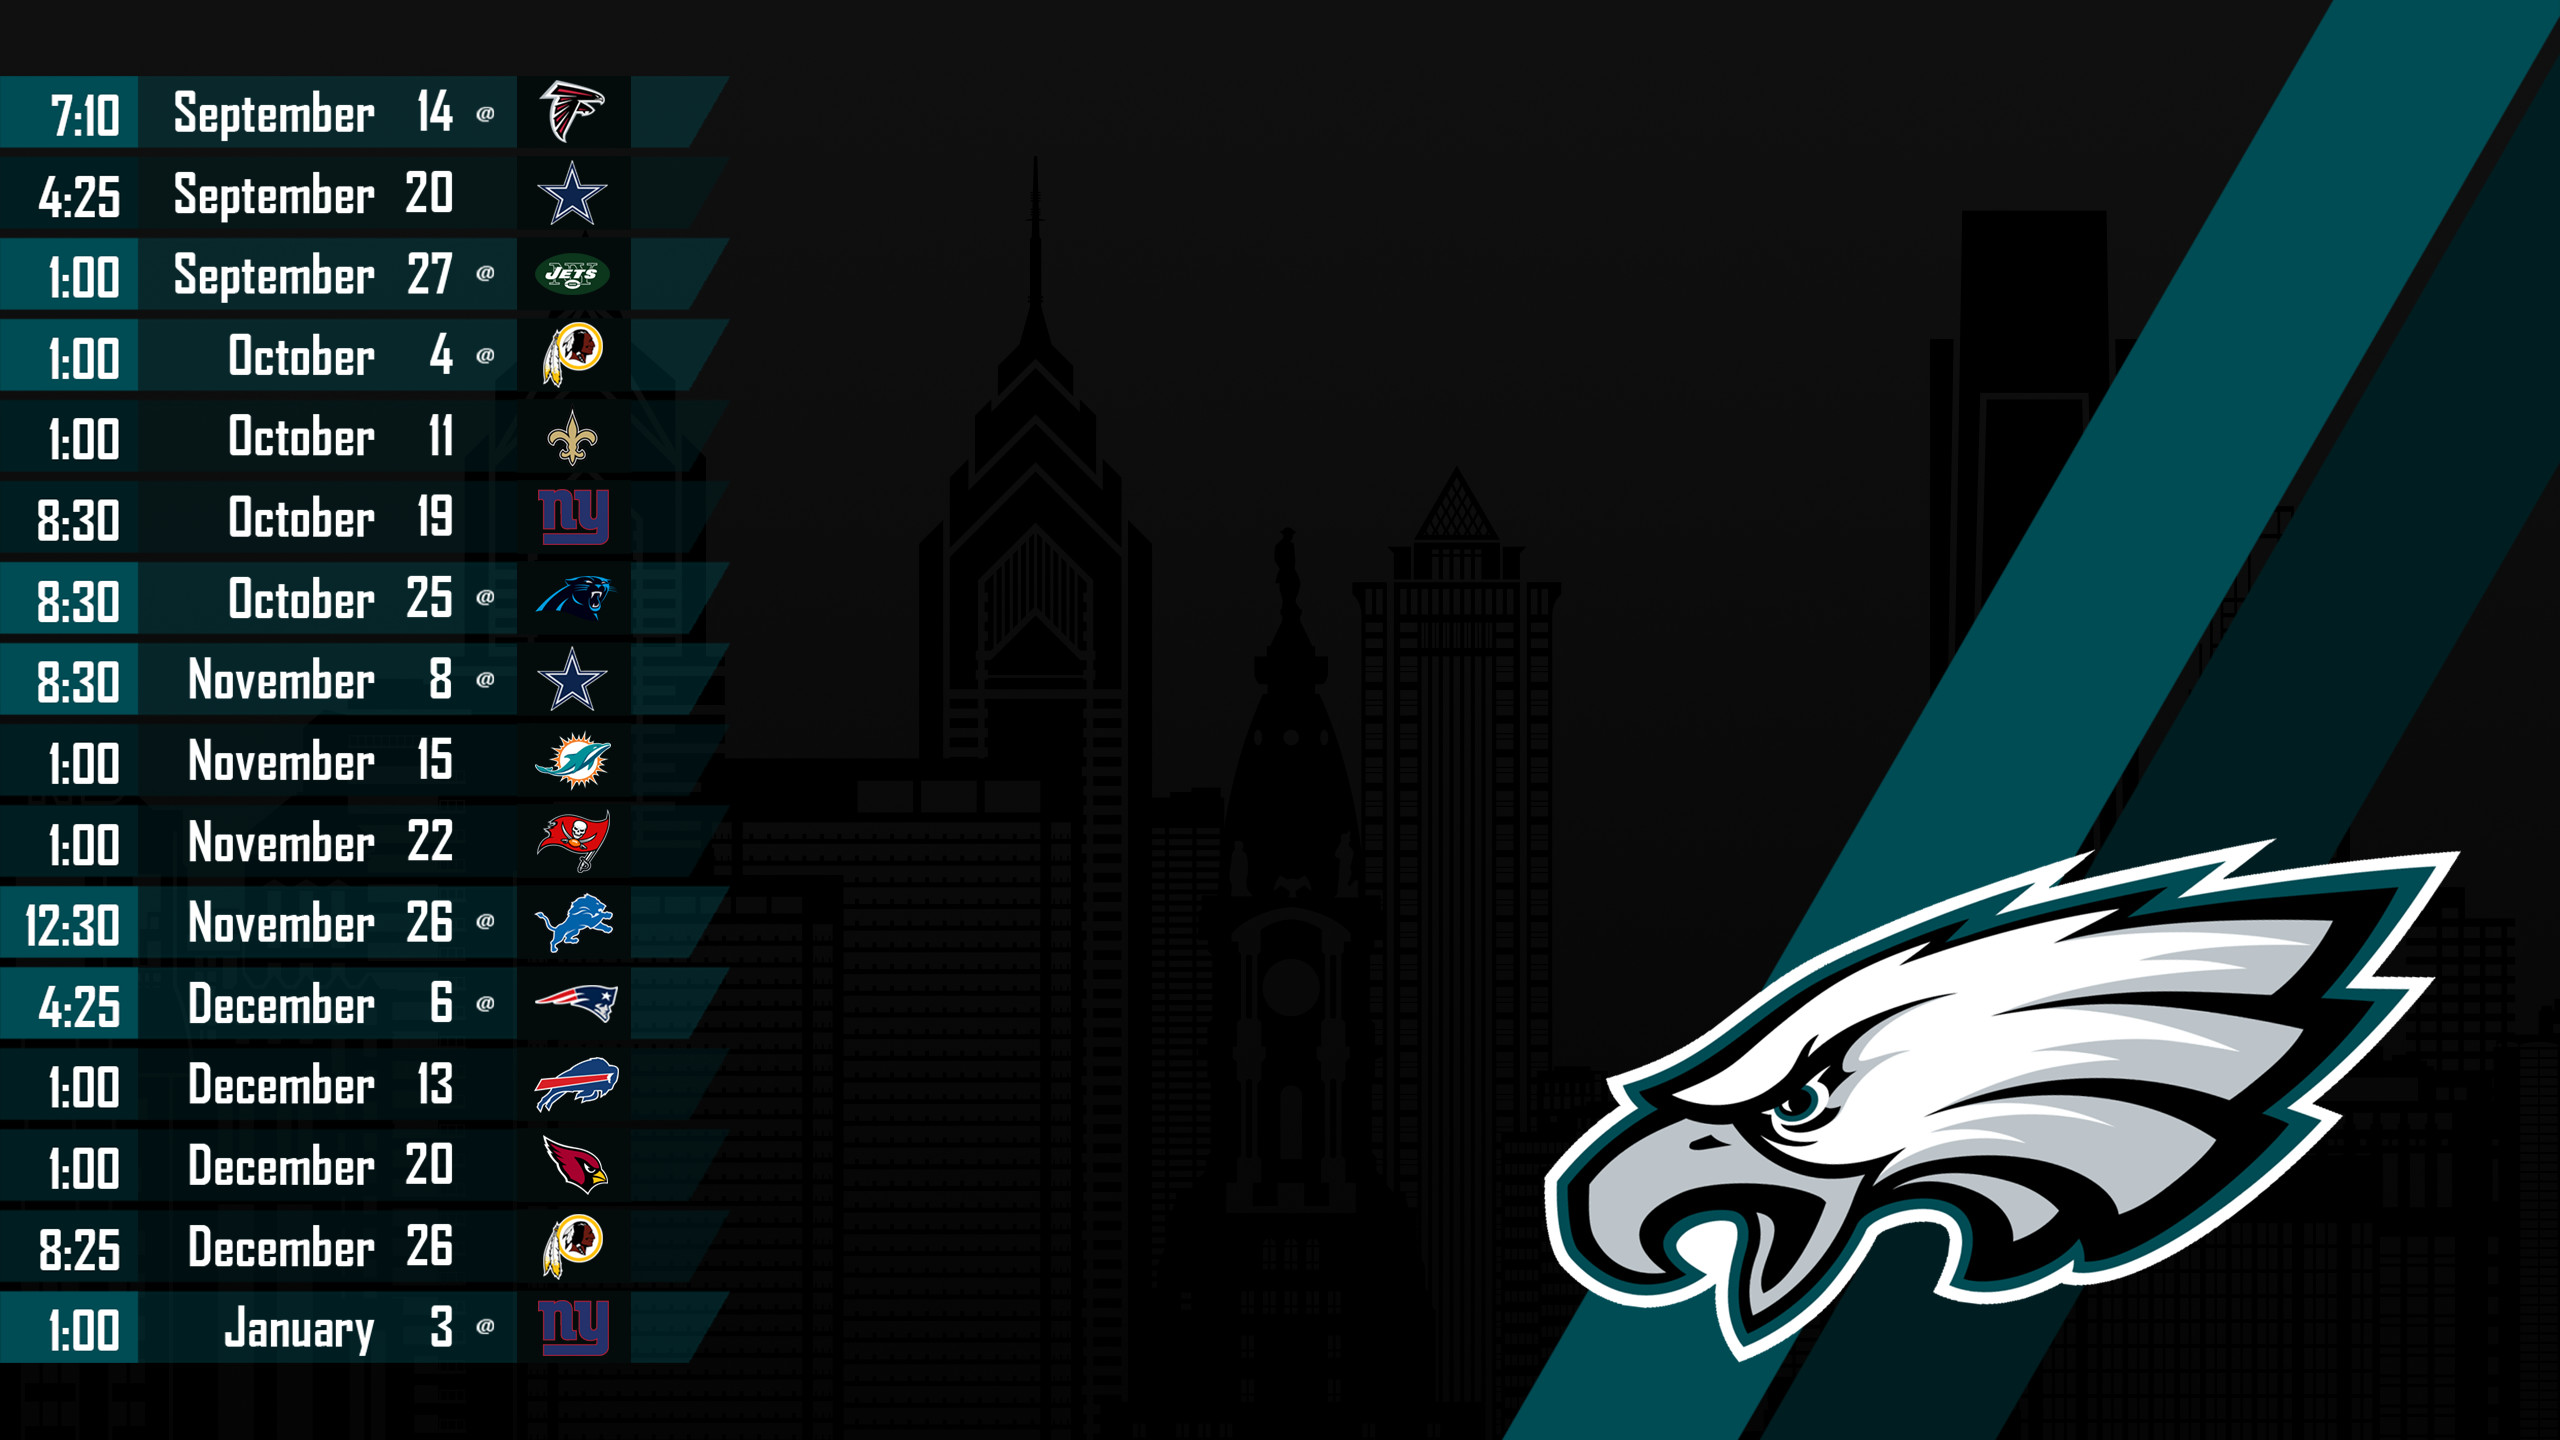 Iphone X Philadelphia Eagles Wallpaper Philadelphia Eagles 2018 Schedule Wallpaper 56 Images